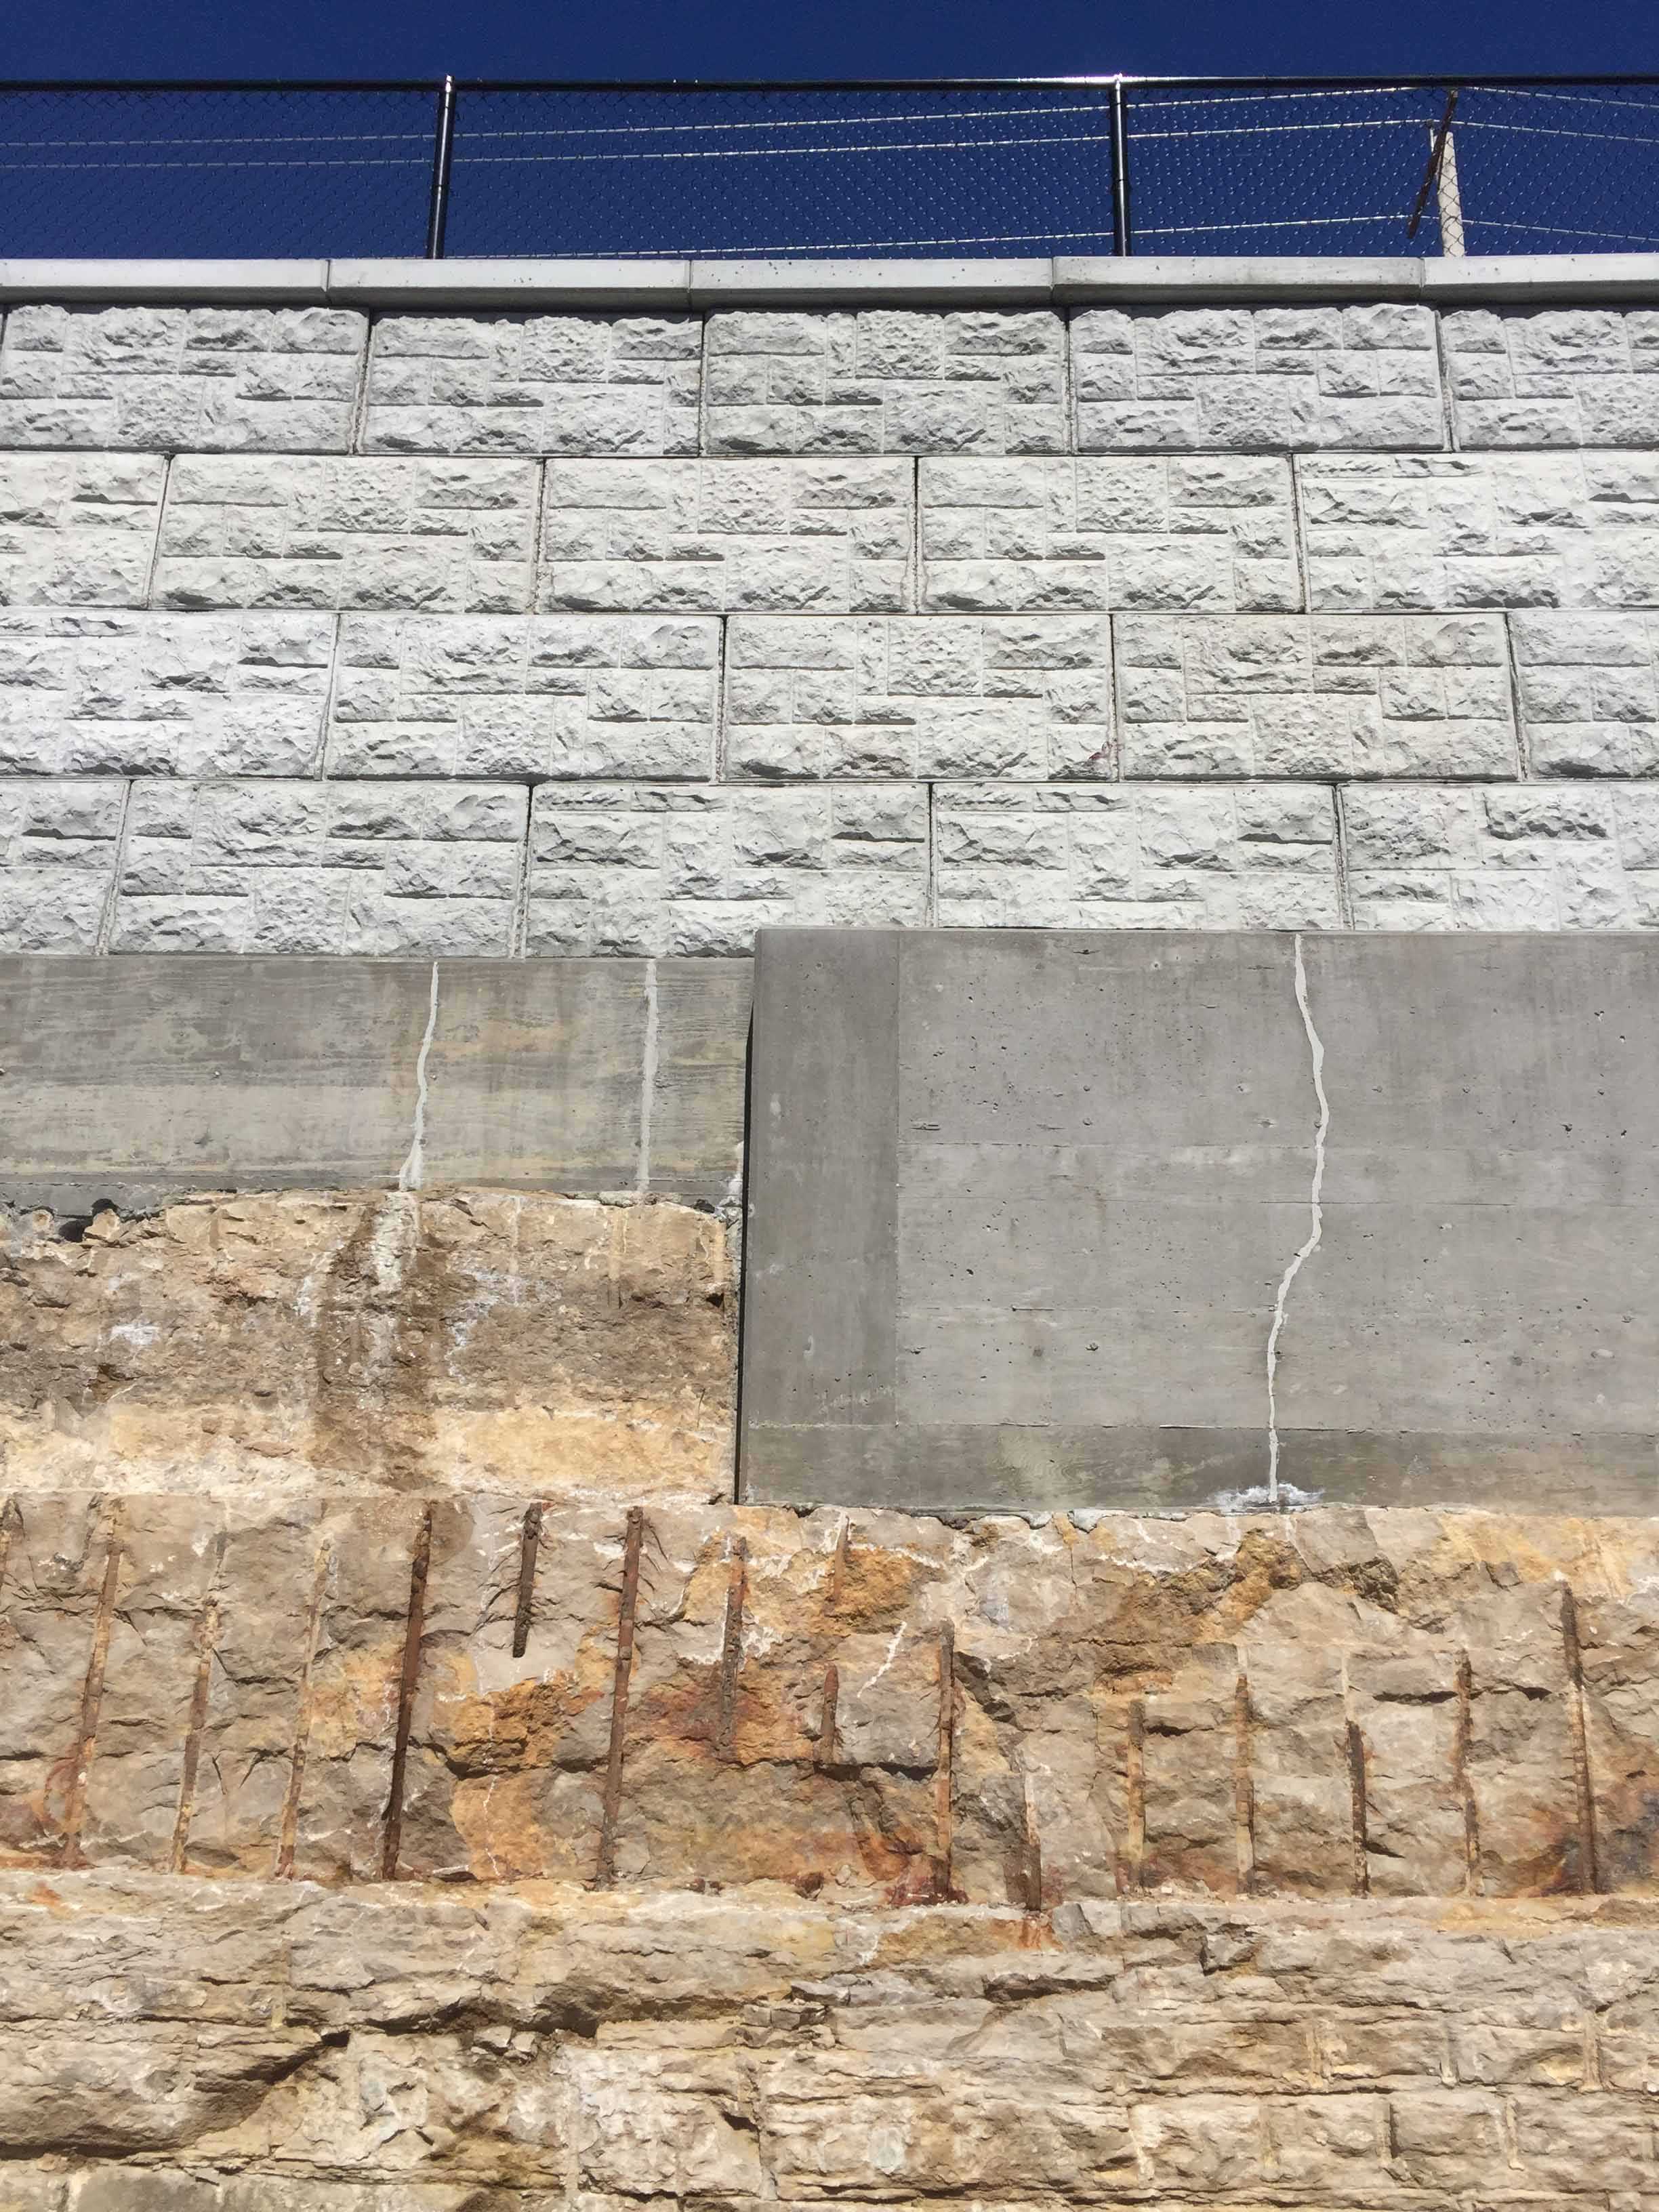 MagnumStone castle face retaining wall in st louis missouri